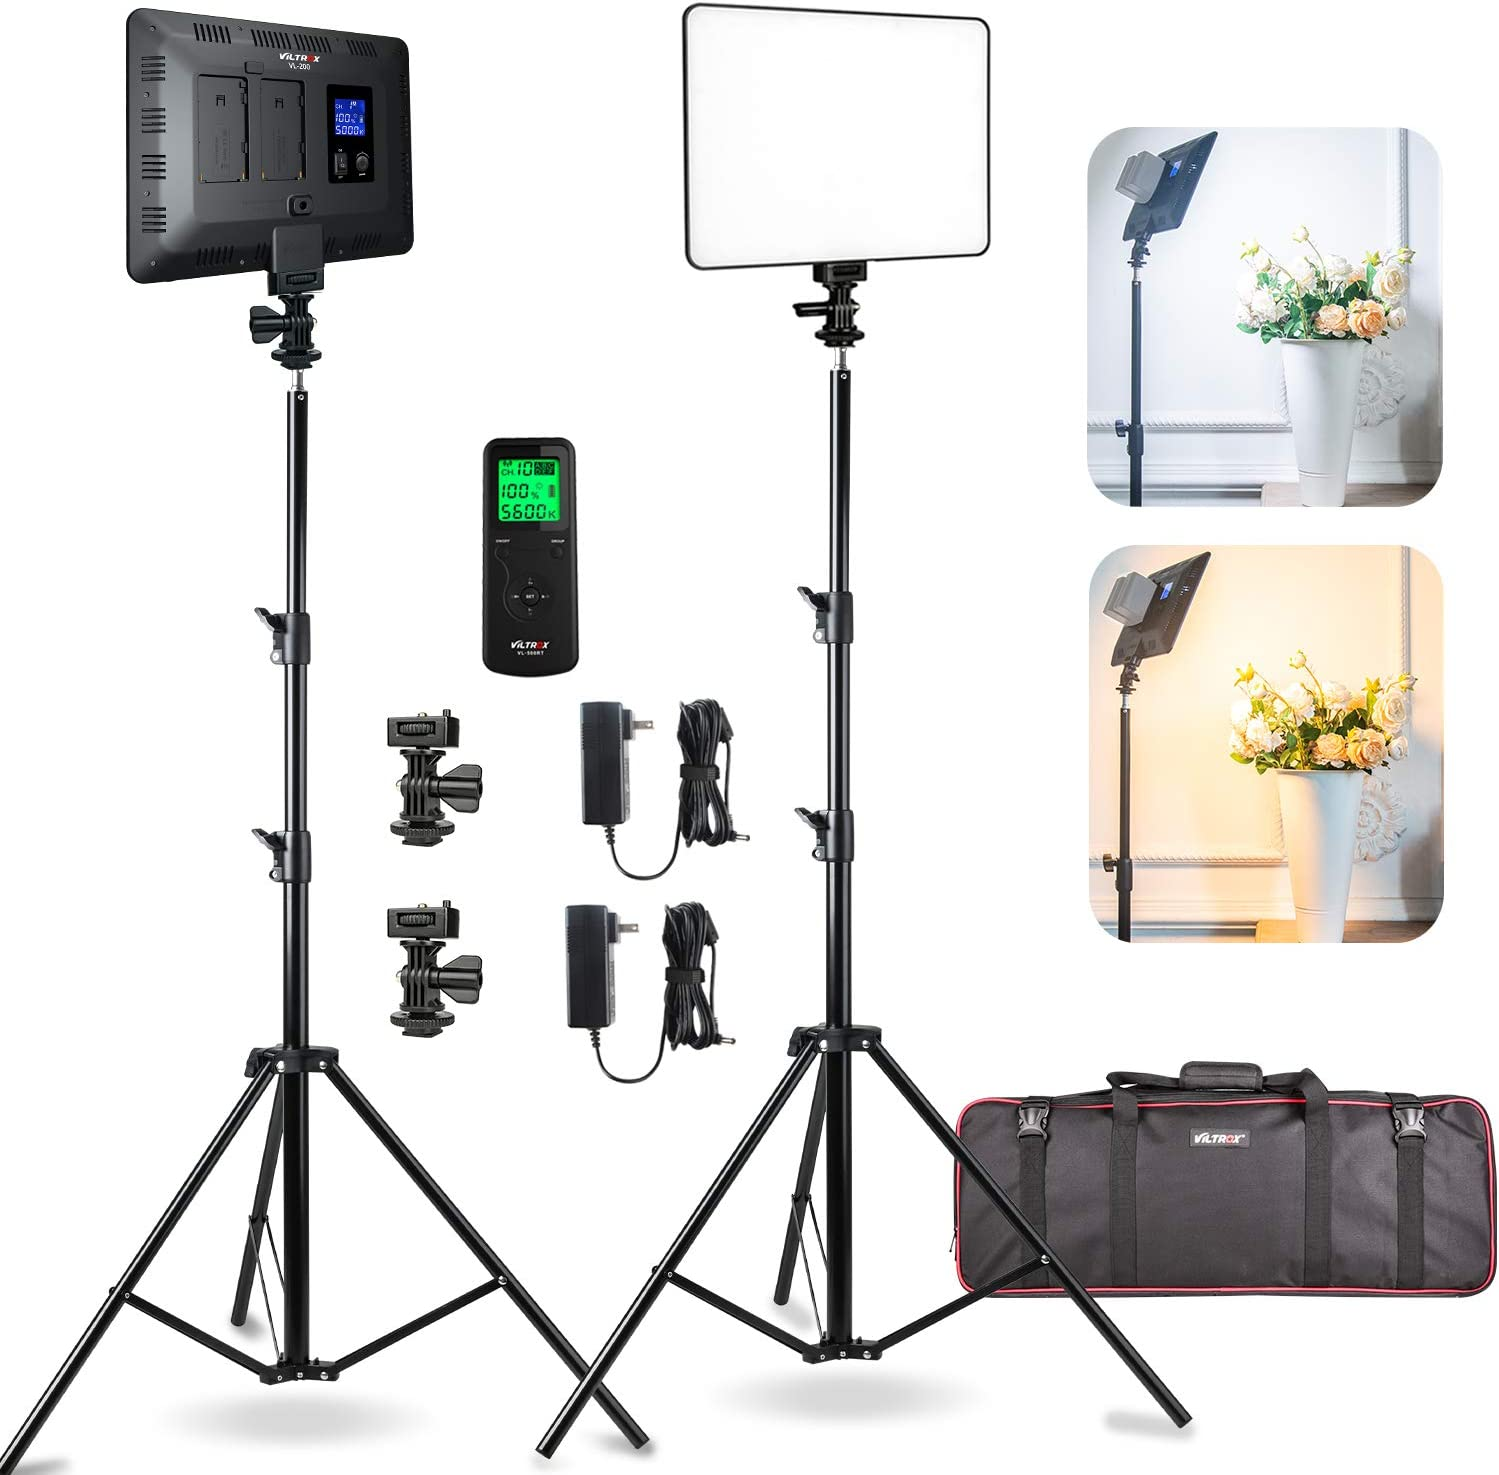 2 Packs LED Video Photography Lights Panel Studio Kit Louisville-Jefferson County Mall Lighting Excellence